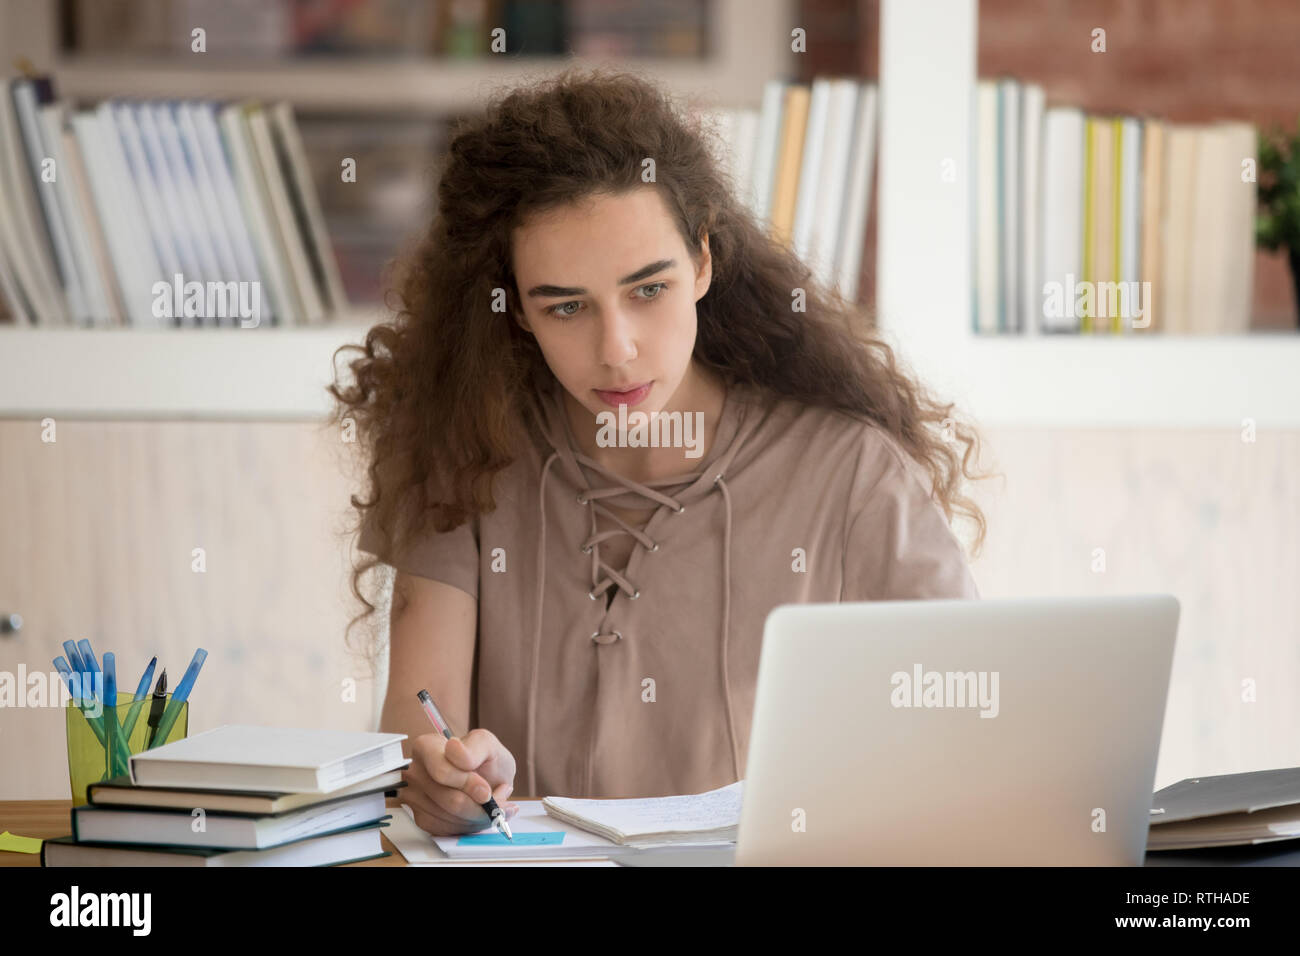 Teen college graduate student studying looking at laptop making notes - Stock Image